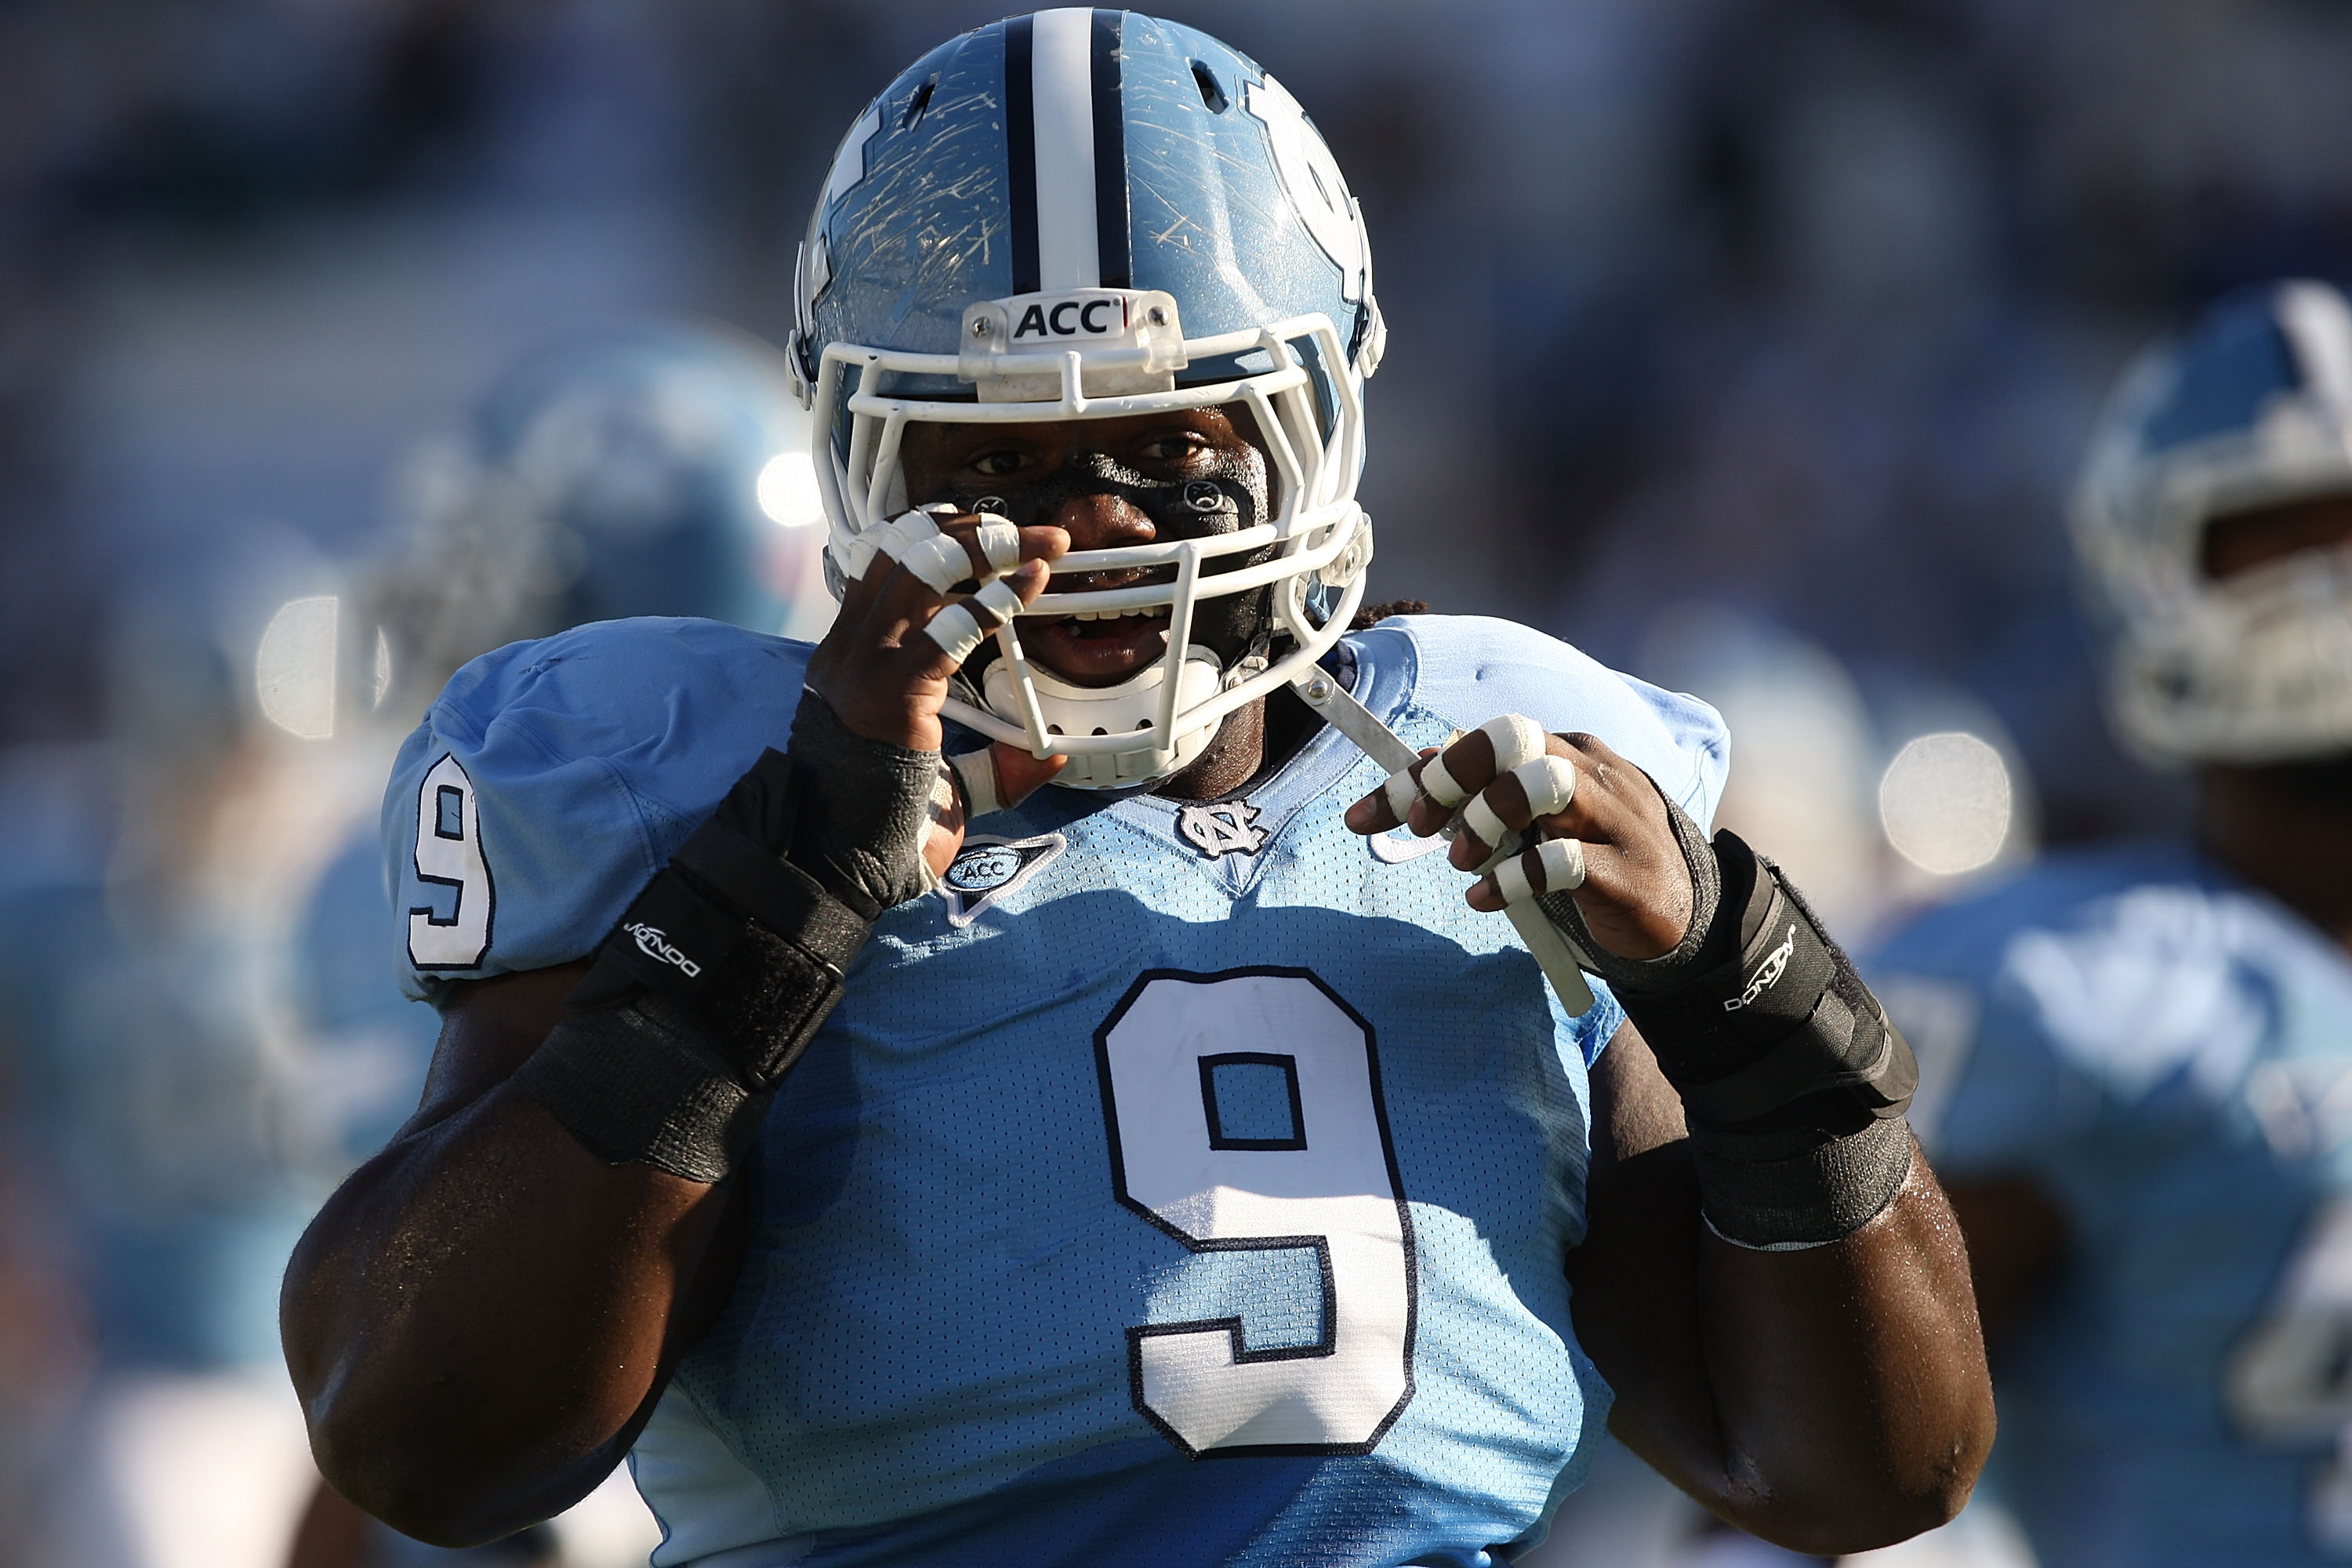 Without Marvin Austin in the fold, the Tarheels have holes to fill, yet are still potent enough to be a road block for the Seminoles.